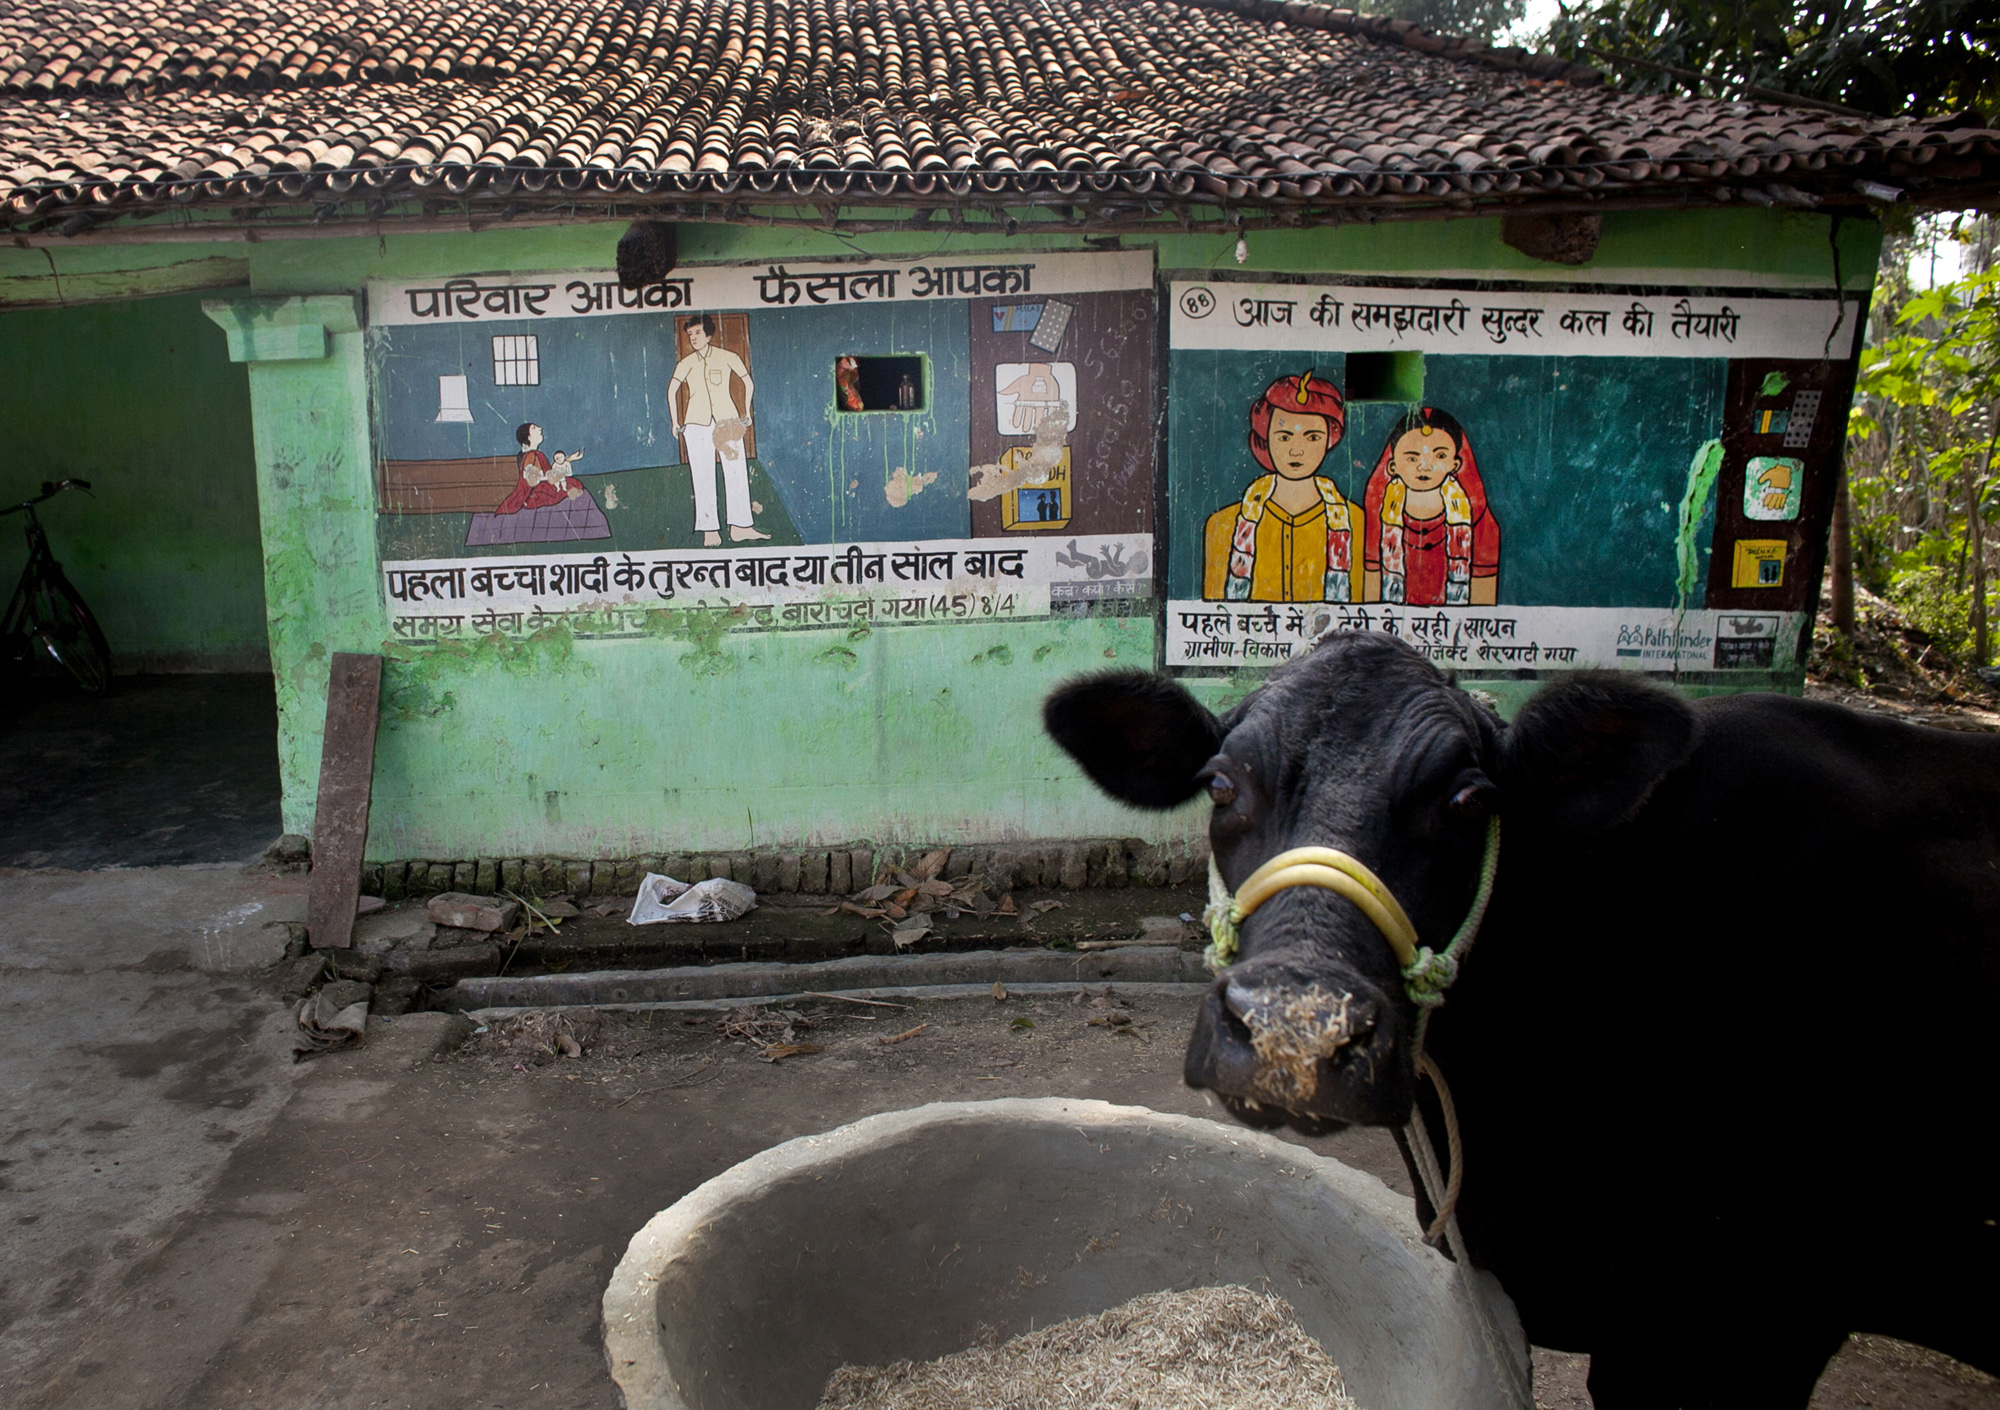 Pathfinder murals around rural Bihar